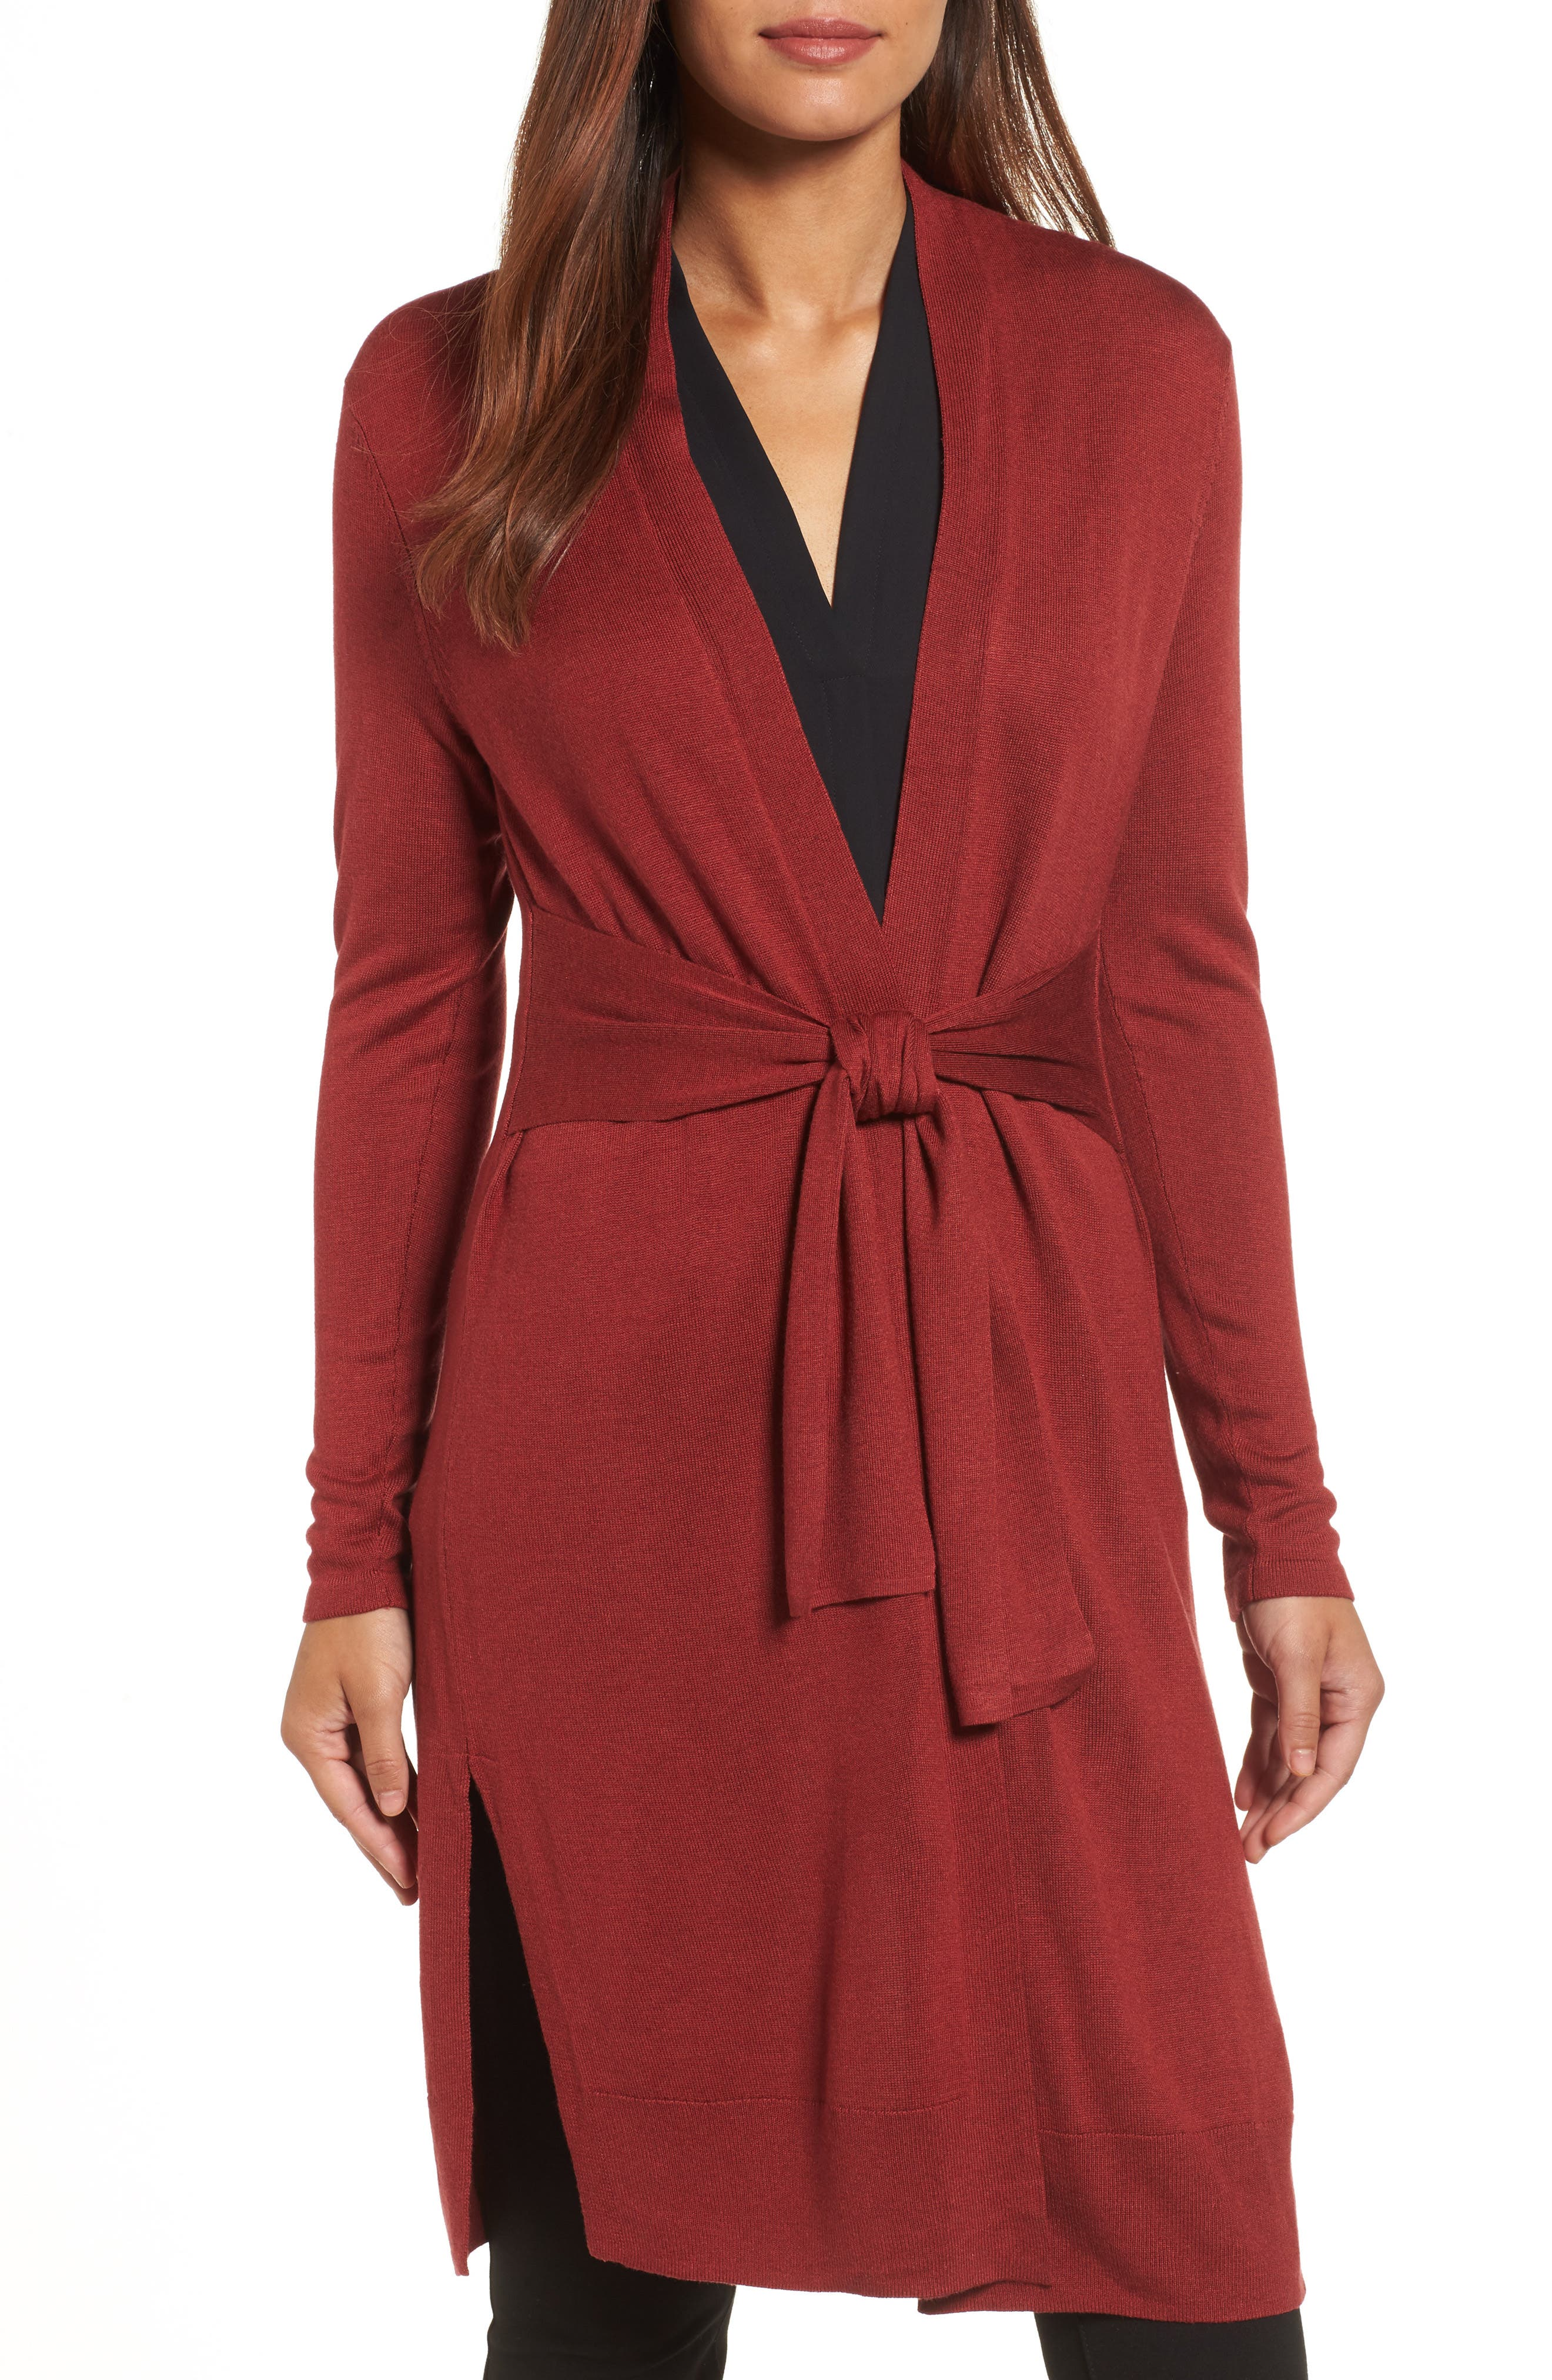 NIC+ZOE Silk Blend Trench Cardigan (Regular & Petite)